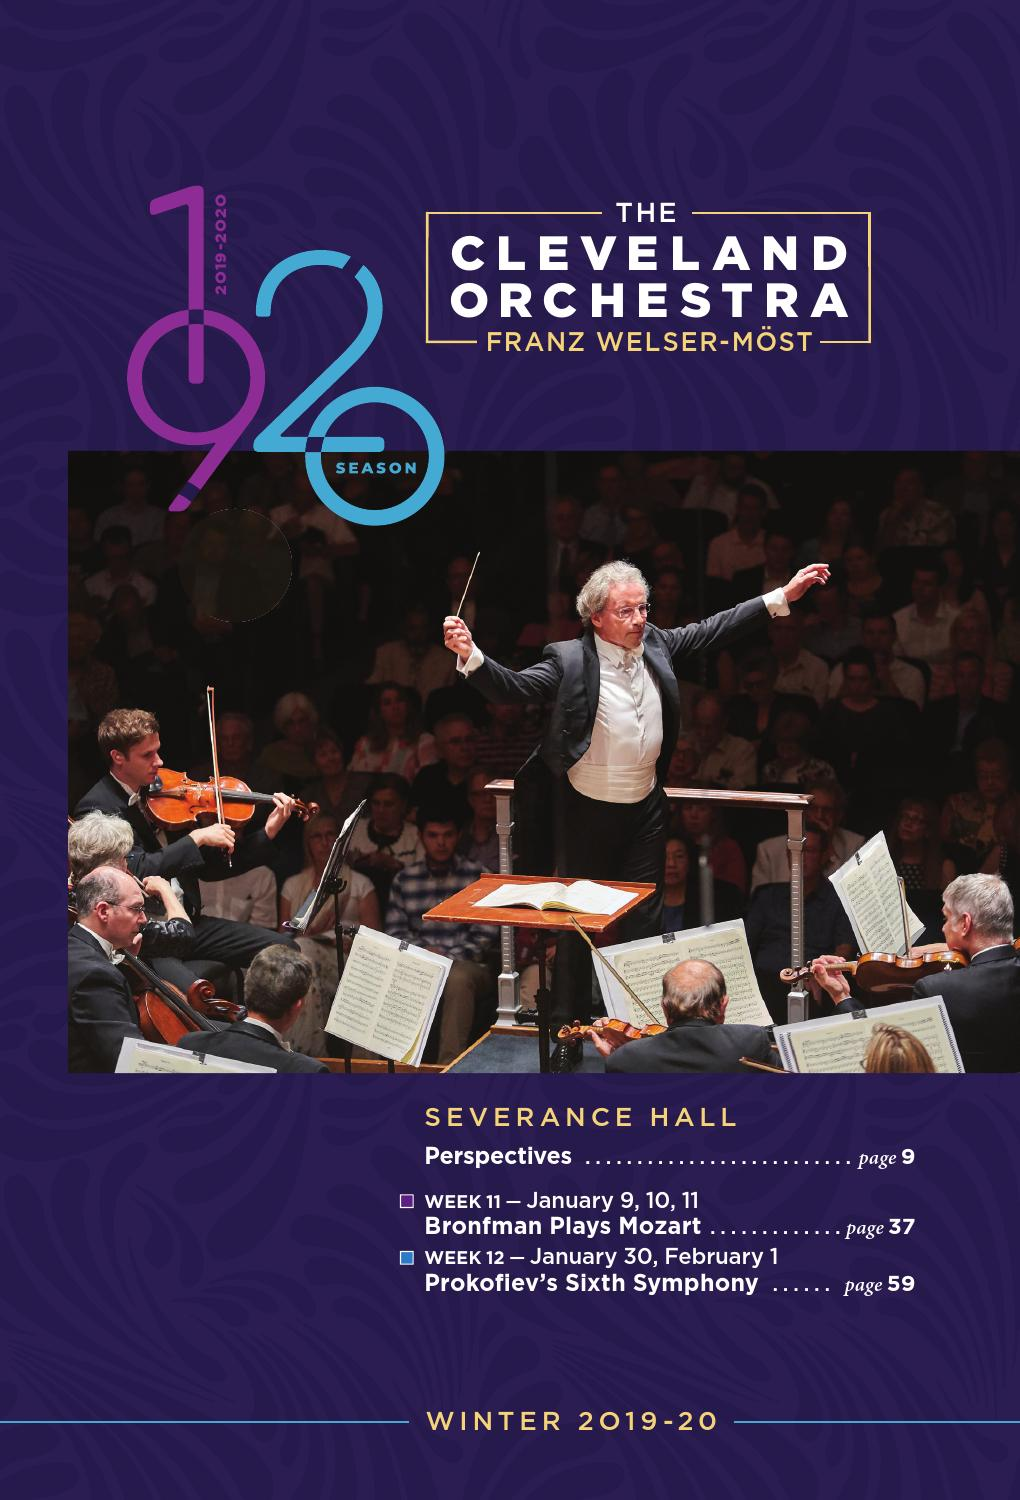 The Name If The Orchestra On Cma Christmas 2020 The Cleveland Orchestra January 9 11, 30, February 1 Concerts by